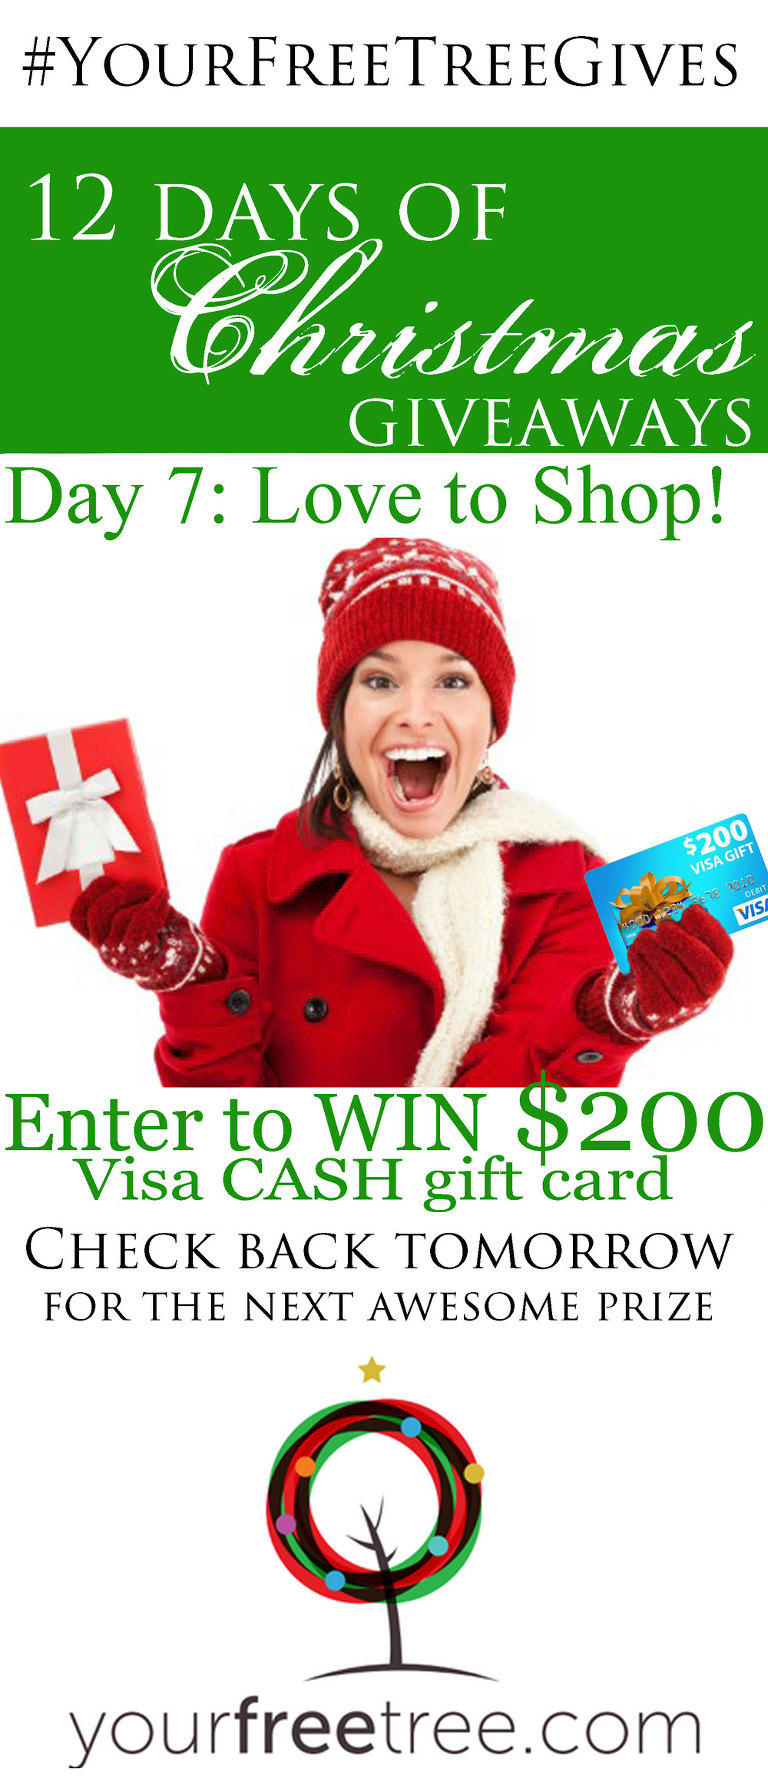 Cash prize giveaway 12 days of christmas